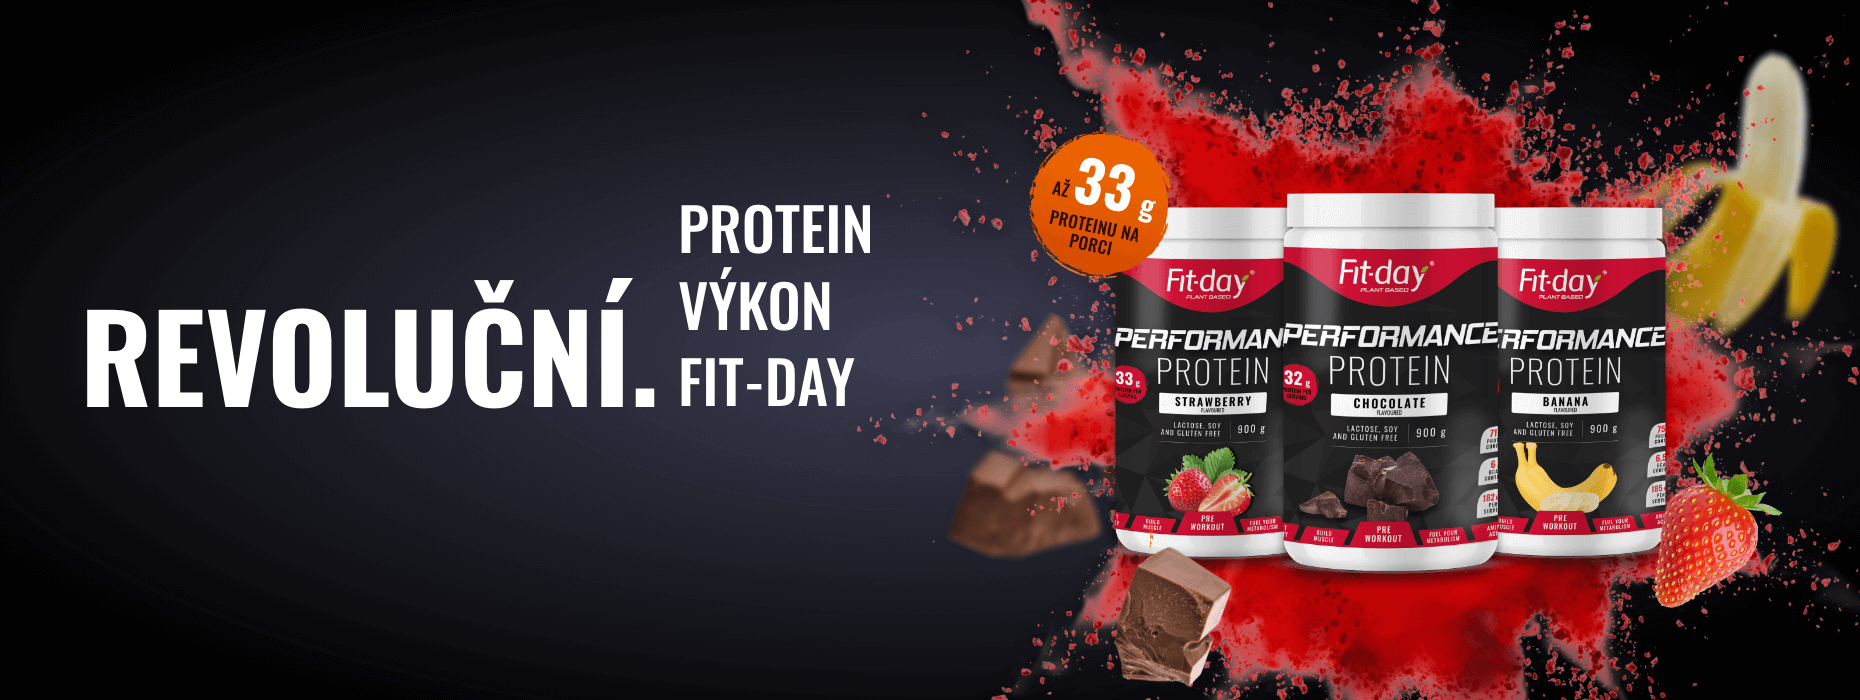 Fit-day protein performance